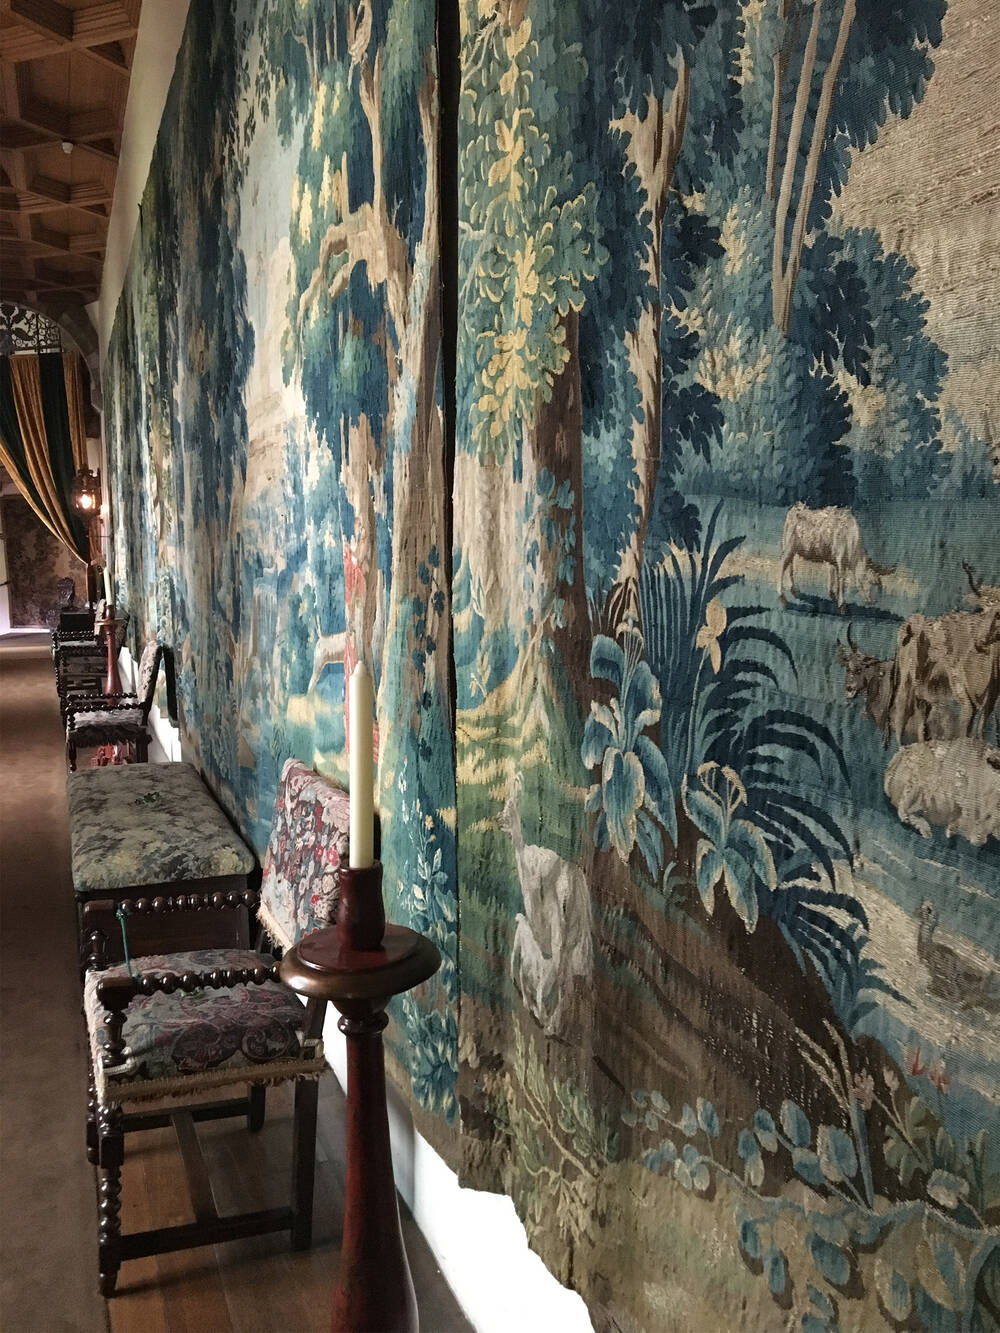 Tapestry Gallery, Falkland Palace